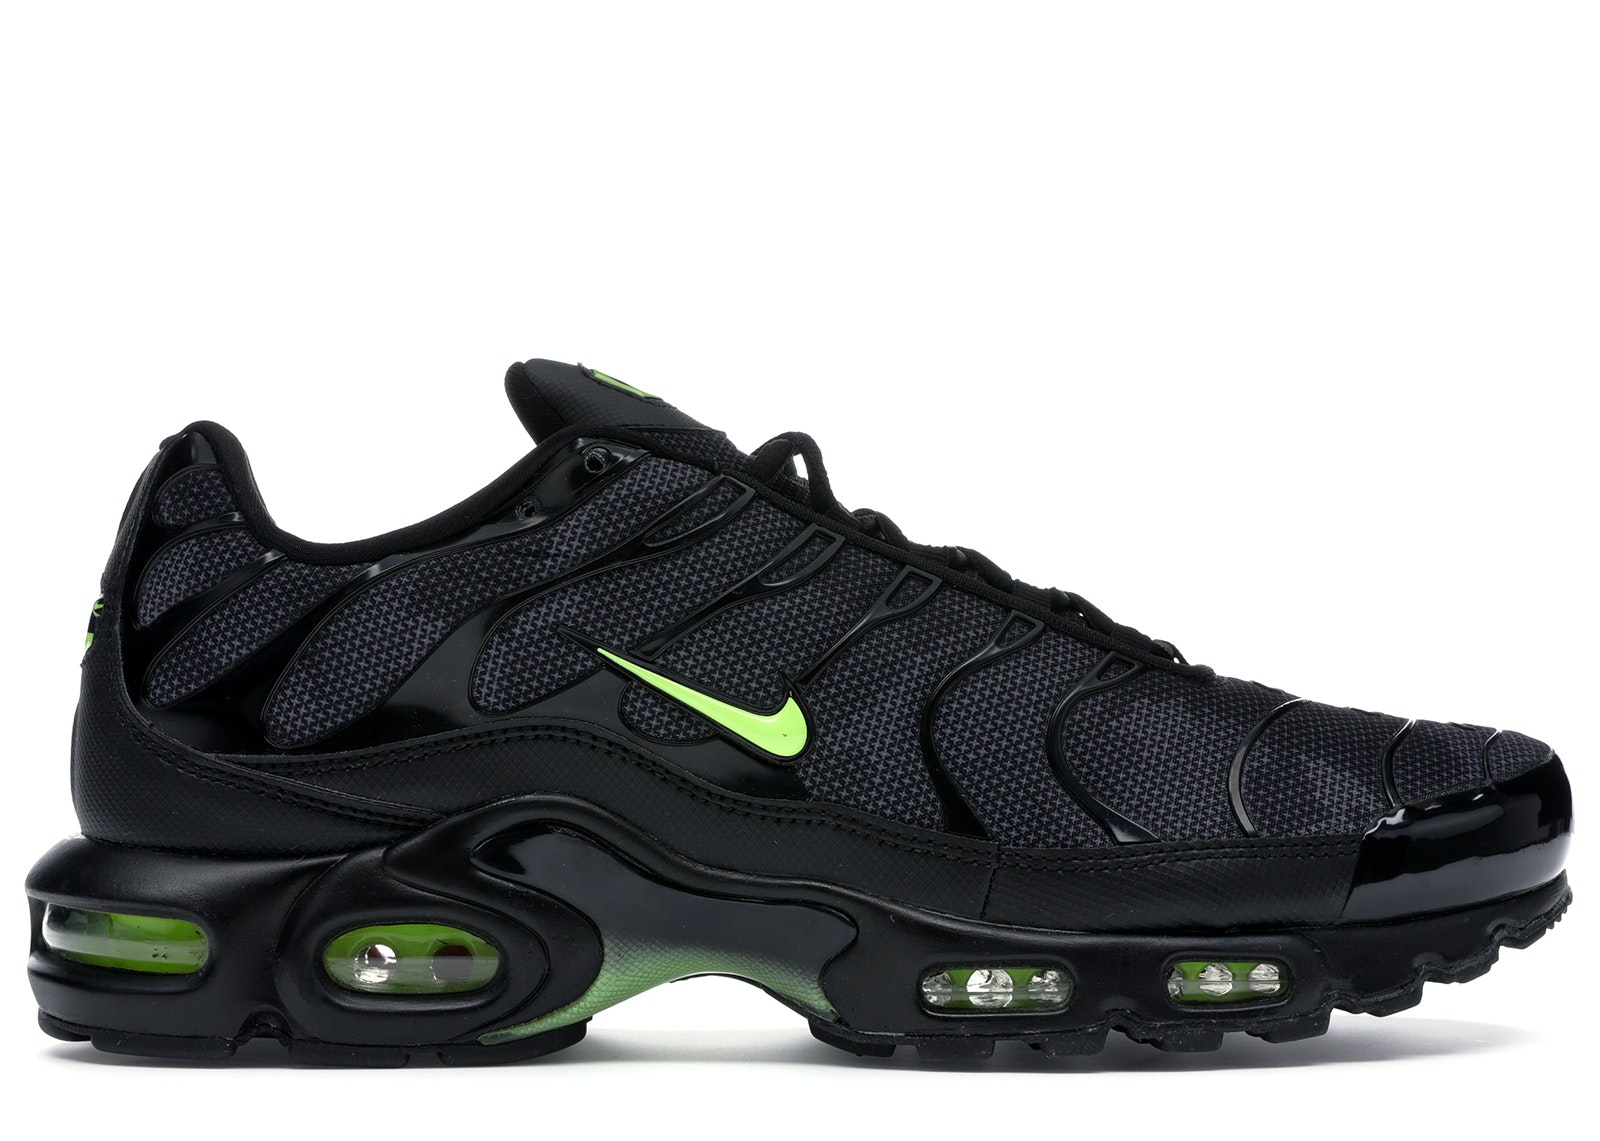 Air Max Plus Black Volt Glow